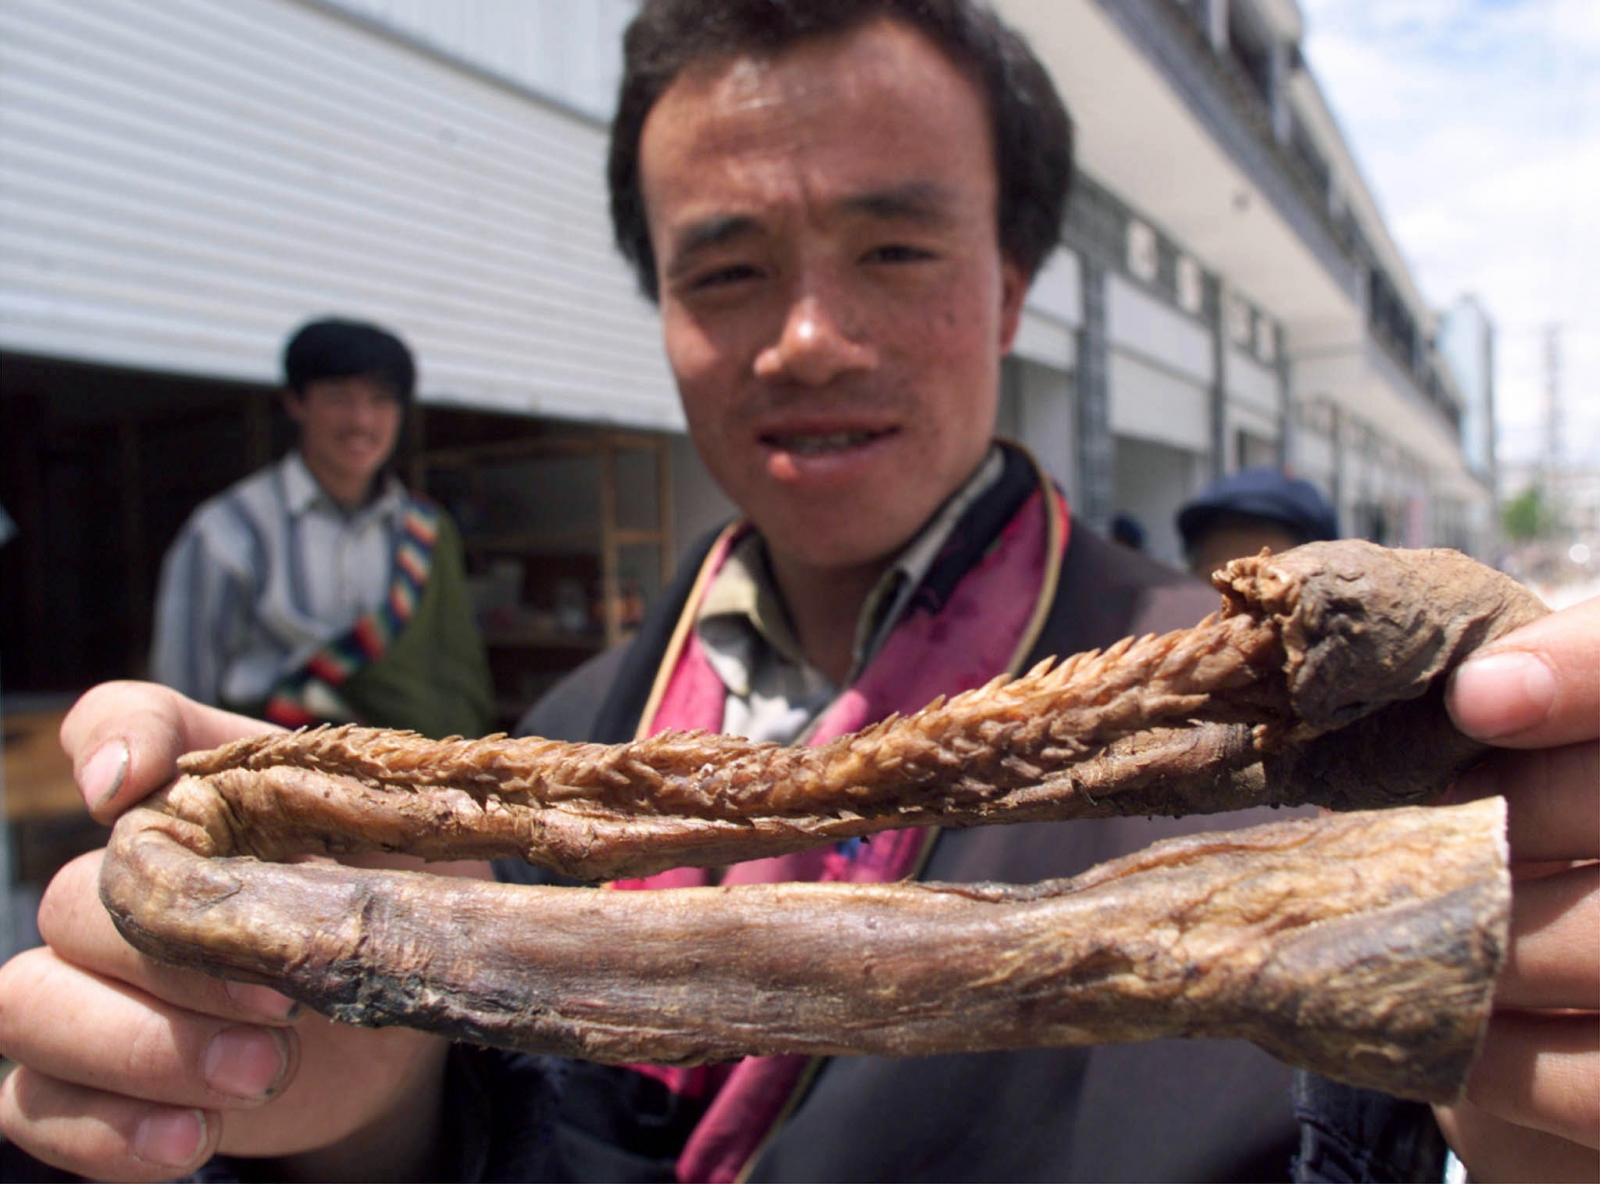 Do You Want To See My Pussy